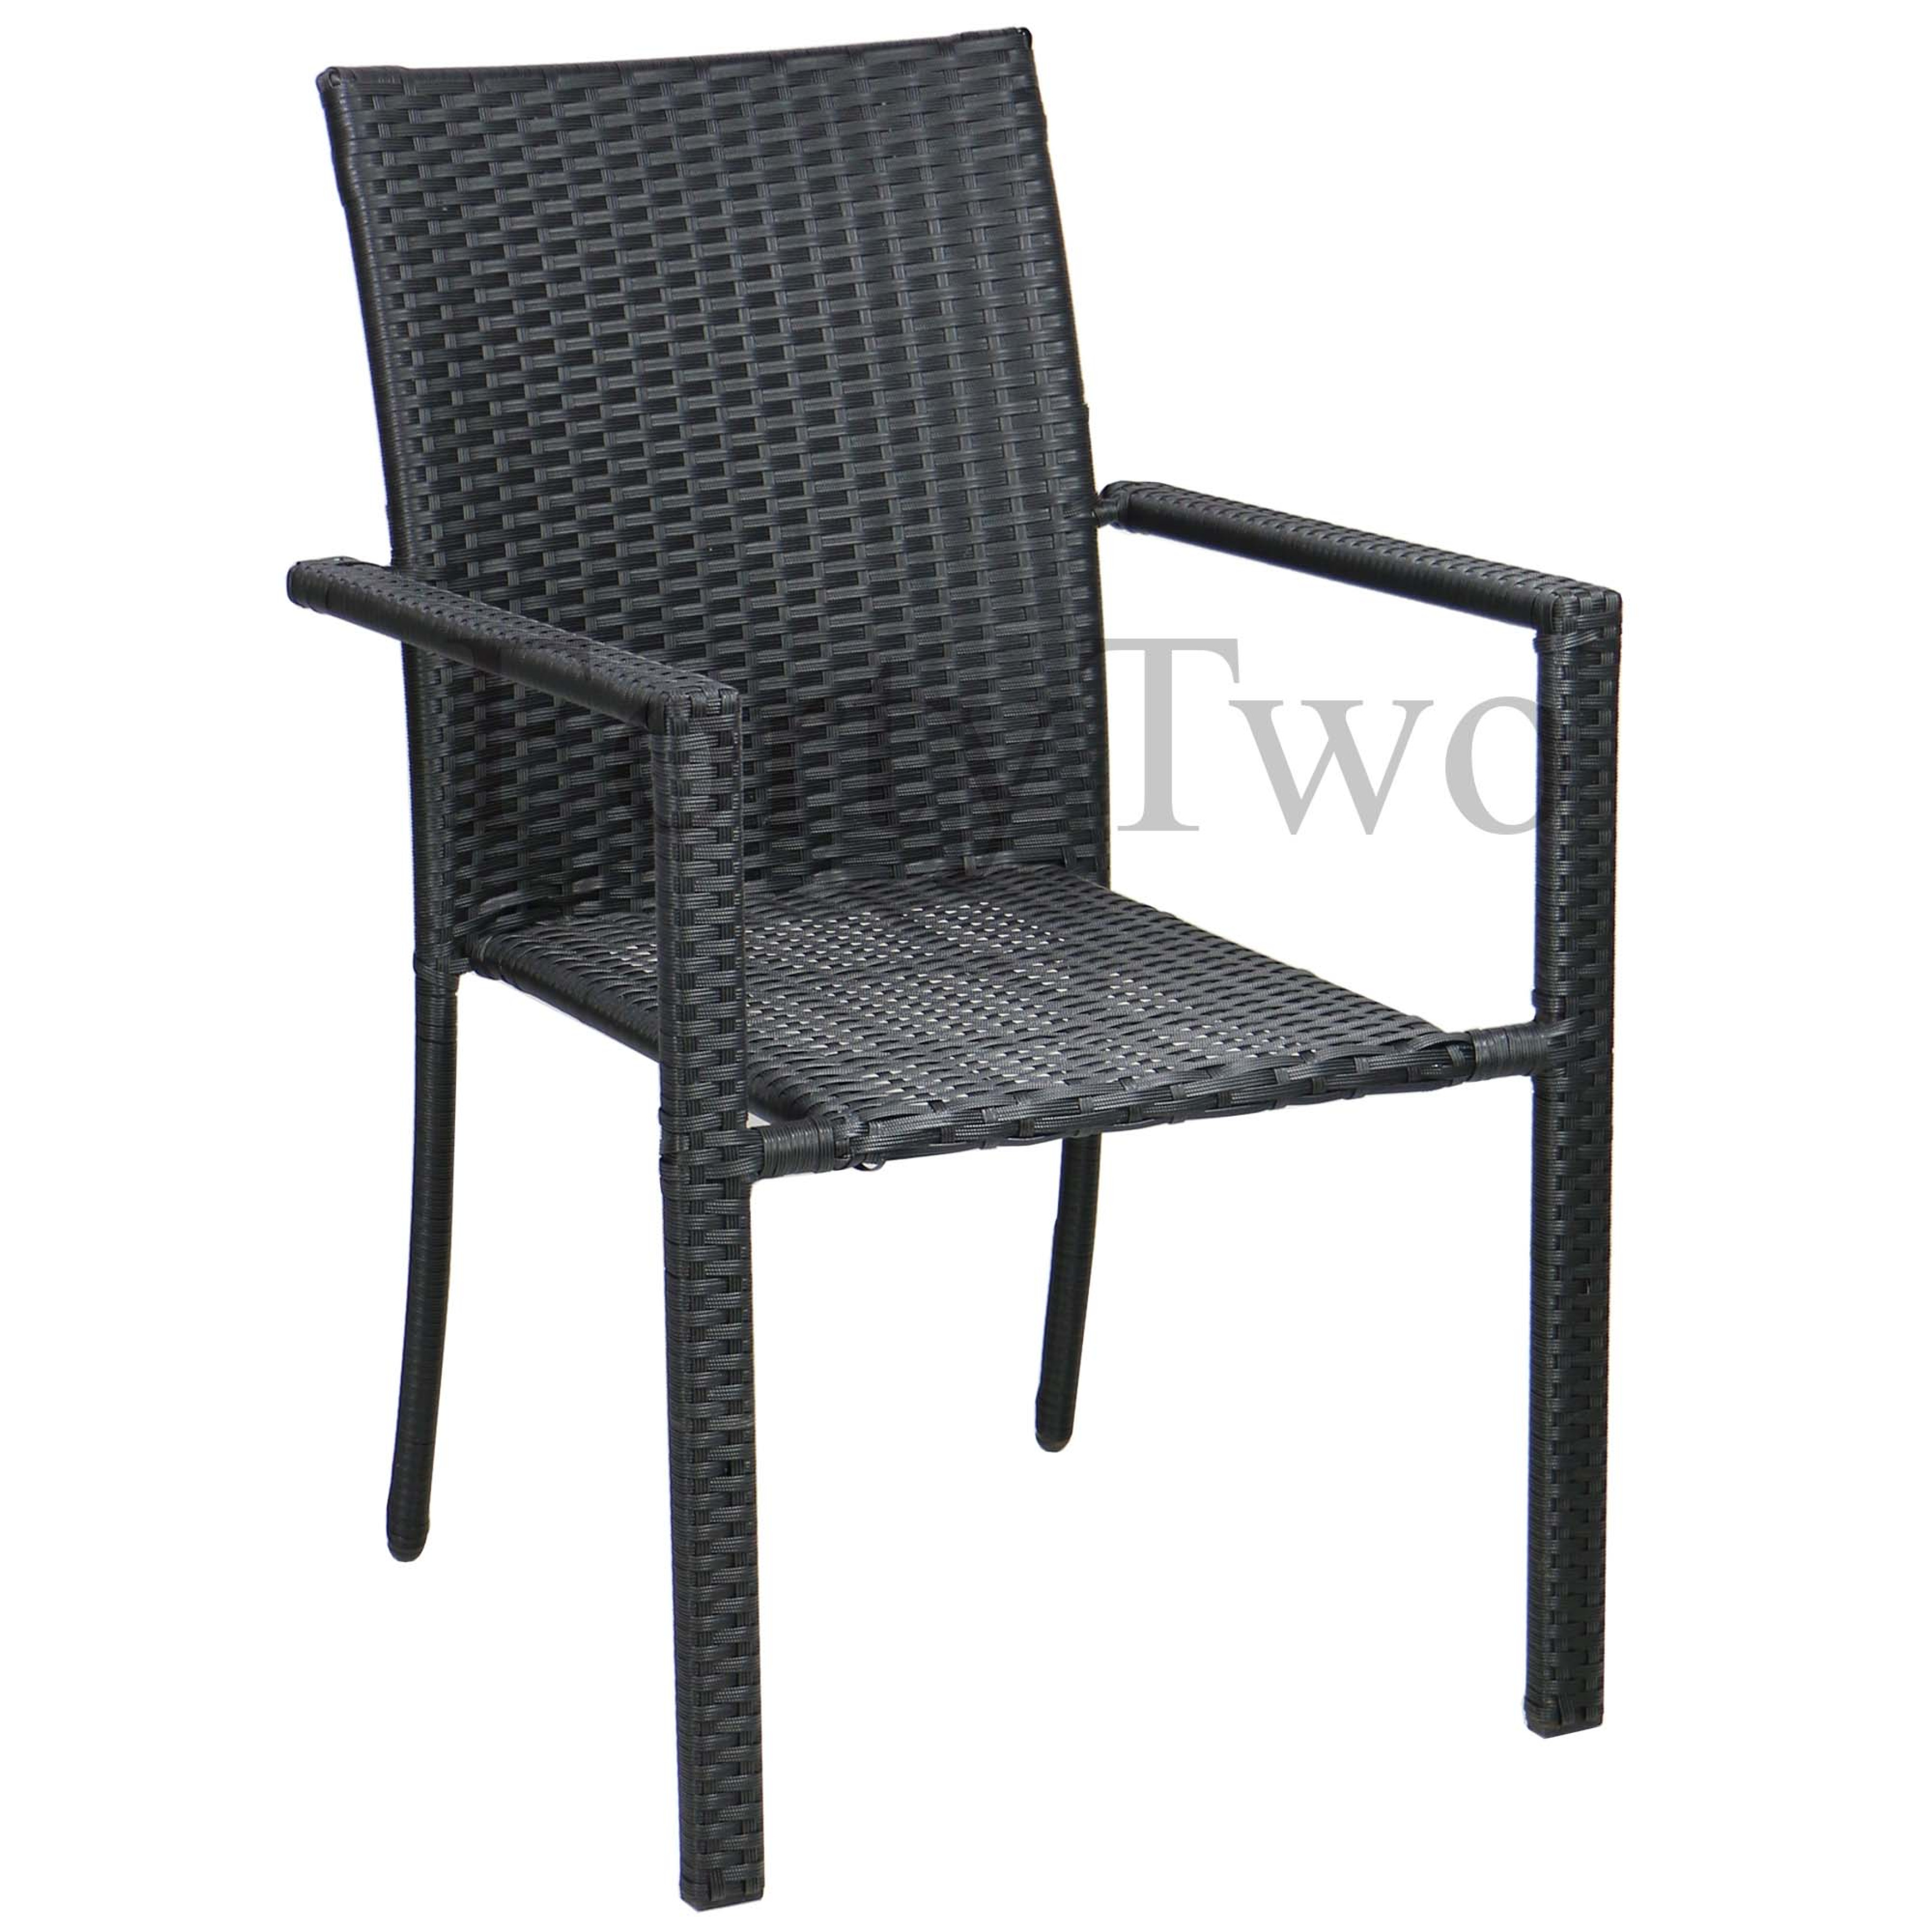 Wakiky Outdoor Dining Set 14 Furniture amp Home D233cor  : 147b11 from www.fortytwo.sg size 3612 x 3612 jpeg 1073kB